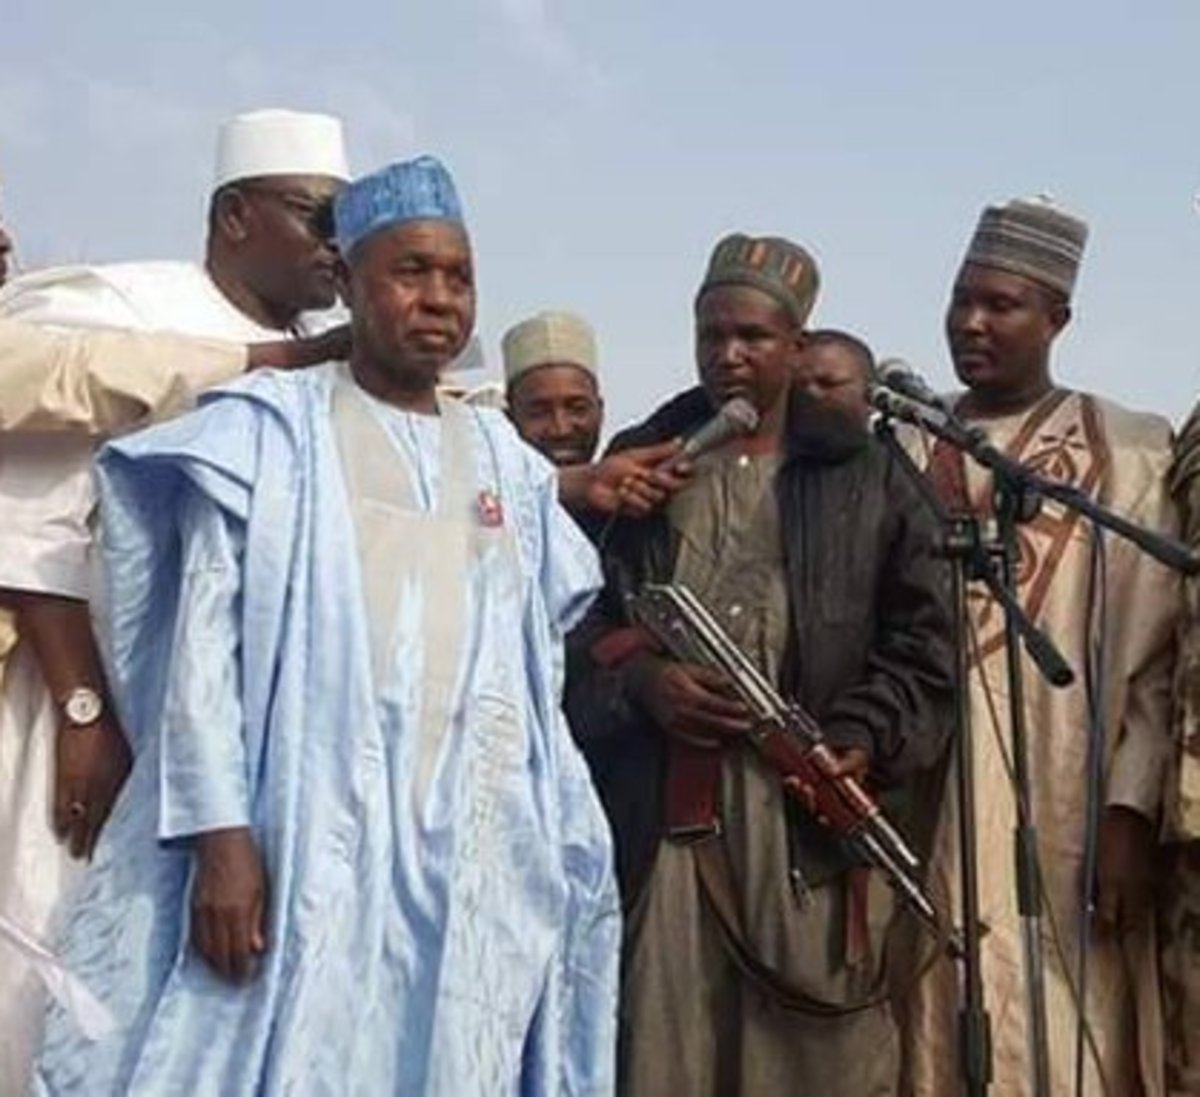 katsina State Governor, Aminu Maigari, poses with a bandits for the cameras during negotiations